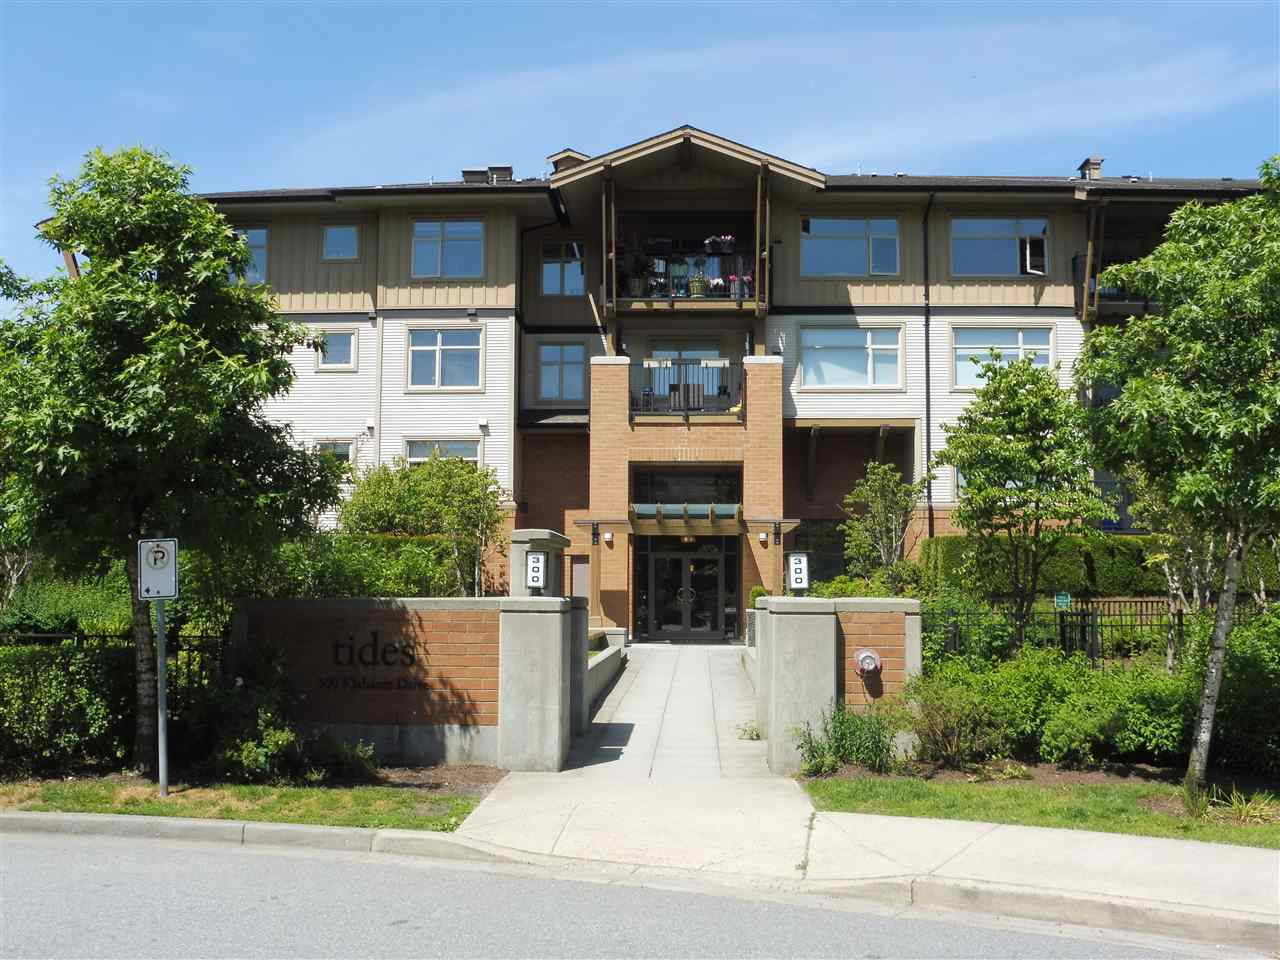 Main Photo: 305 300 KLAHANIE DRIVE in Port Moody: Port Moody Centre Condo for sale : MLS®# R2174432